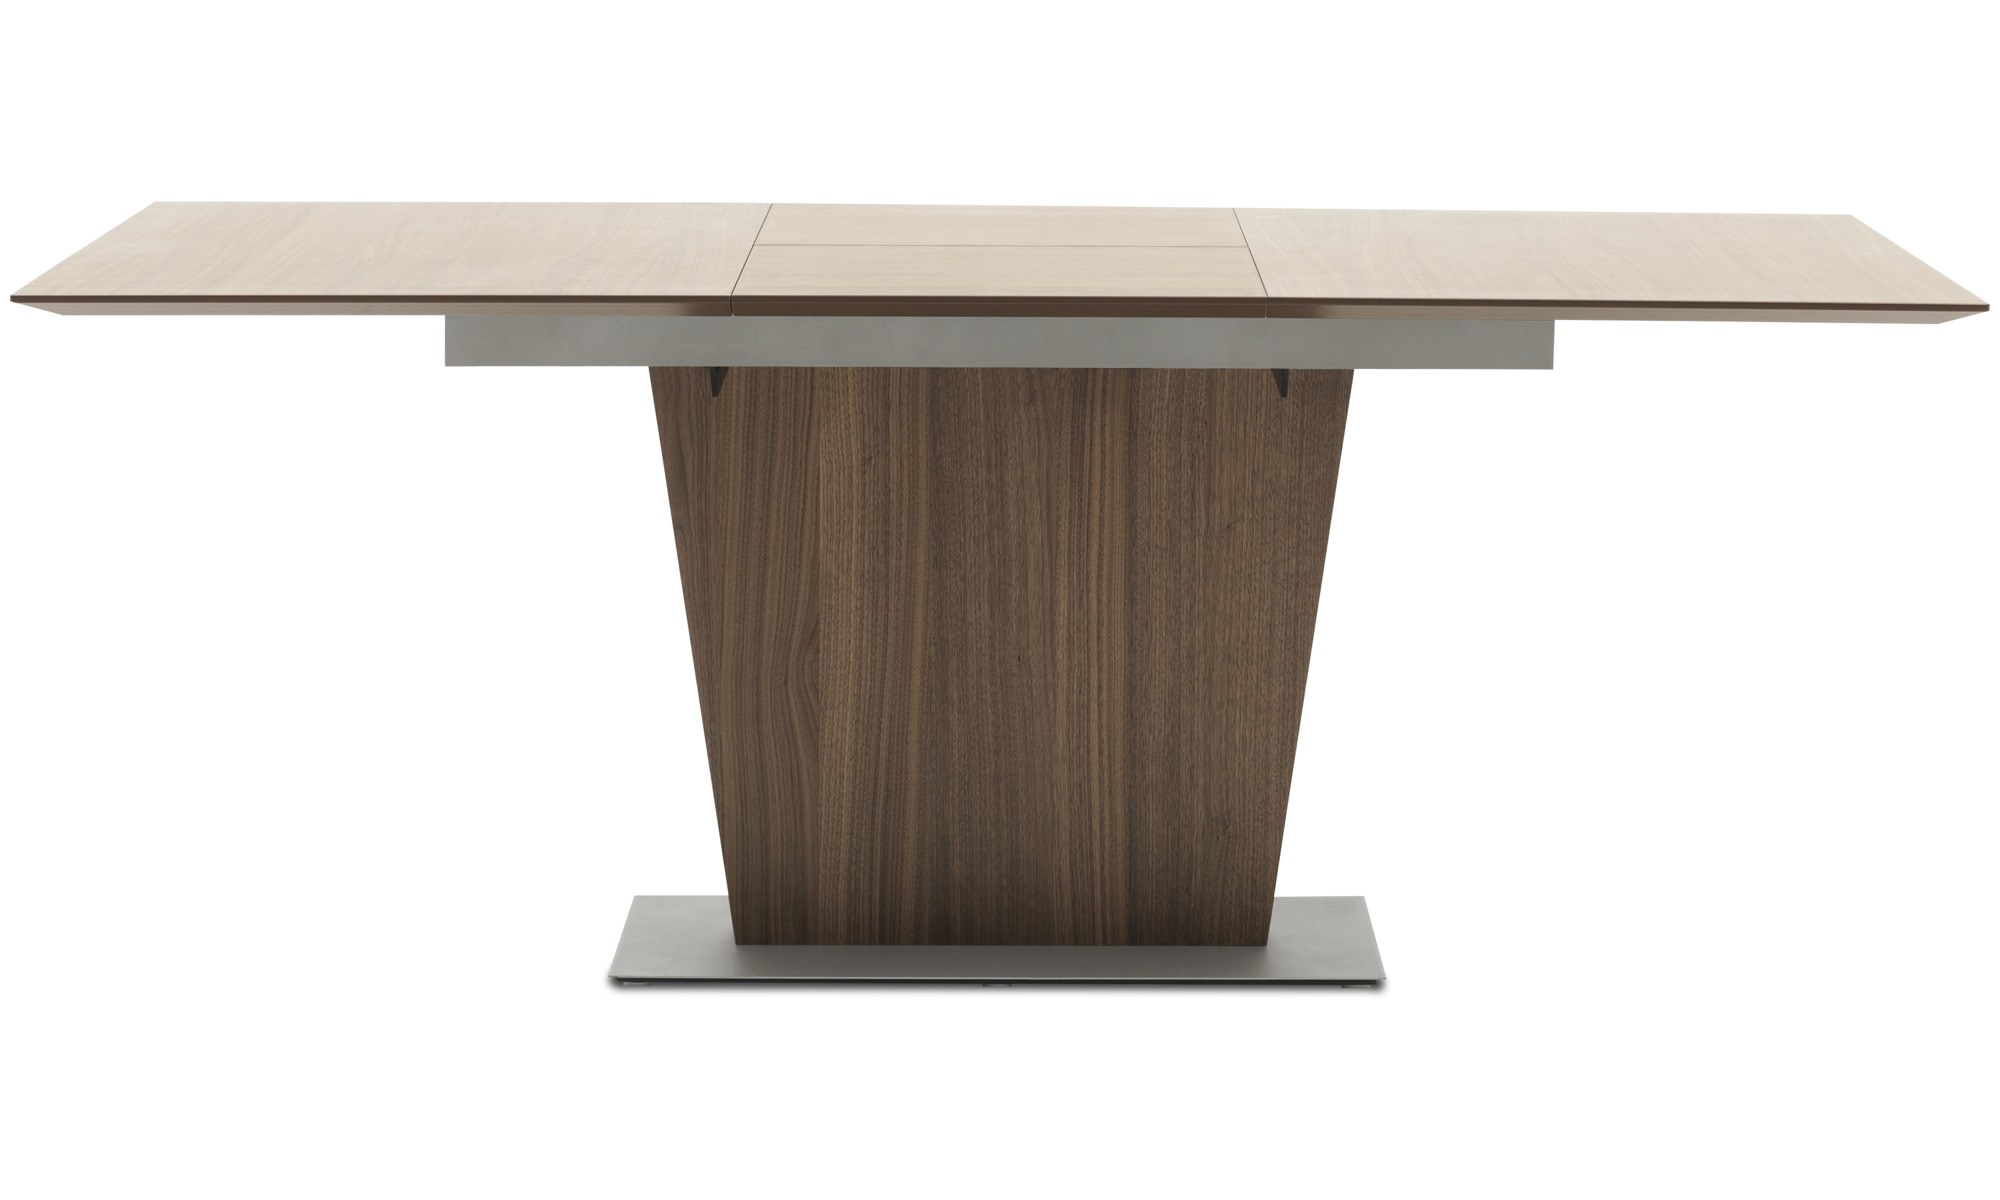 Dining Tables   Milano Table With Supplementary Tabletop   Square   Brown    Walnut